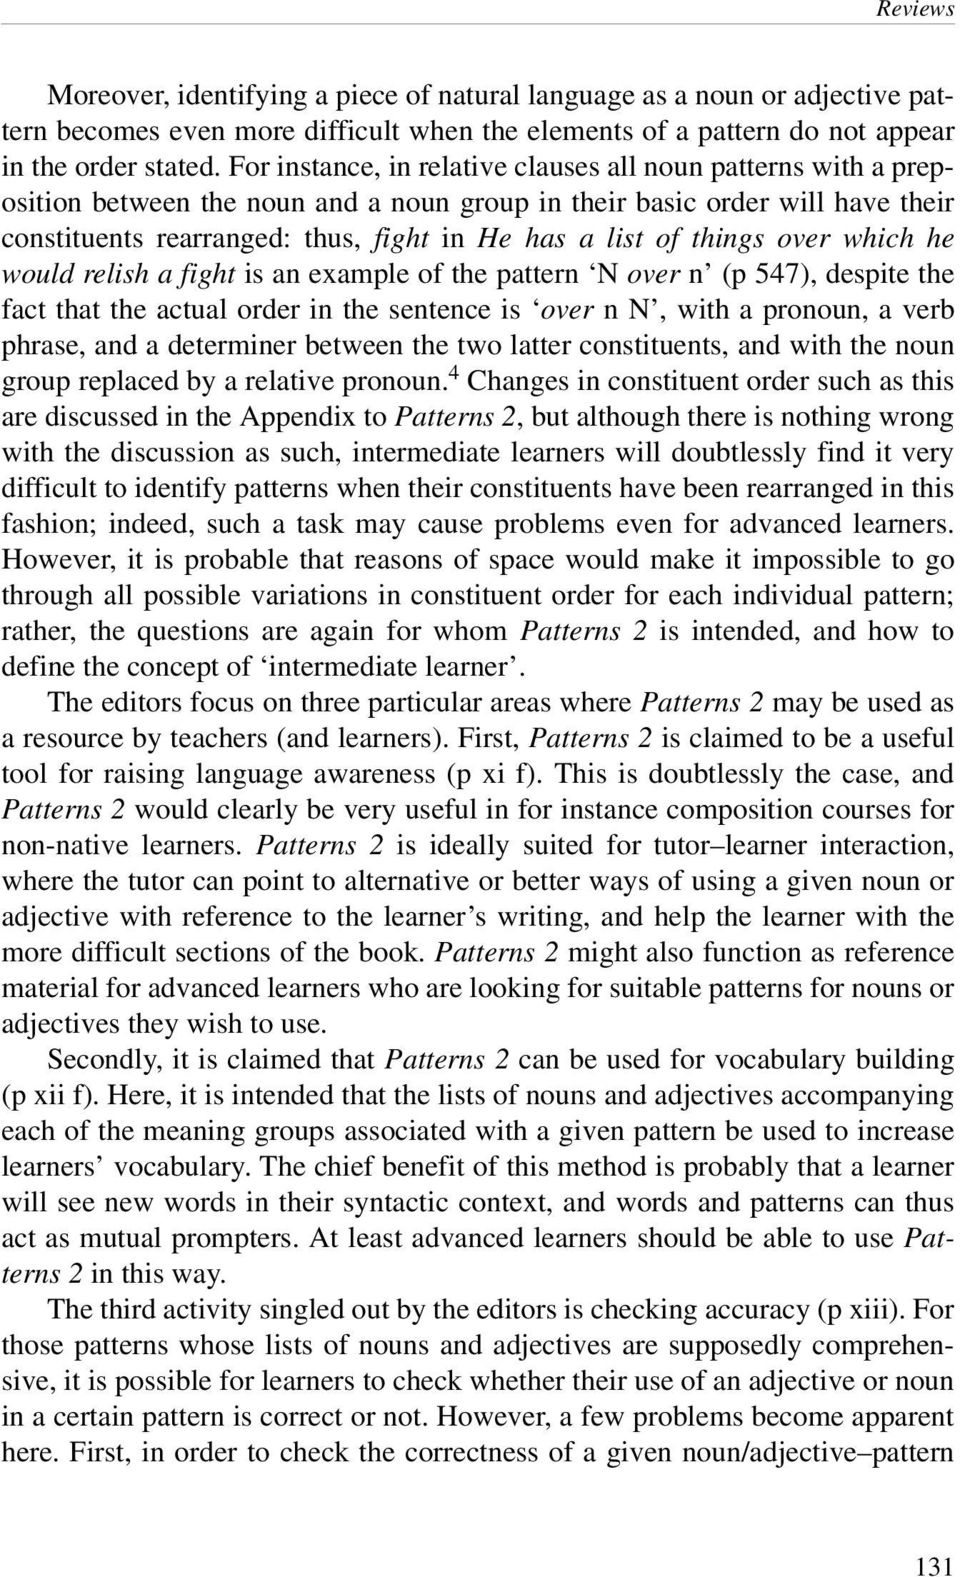 things over which he wouldrelishafightis an example of the pattern N over n (p 547), despite the fact that the actual order in the sentence is over n N, with a pronoun, a verb phrase, and a